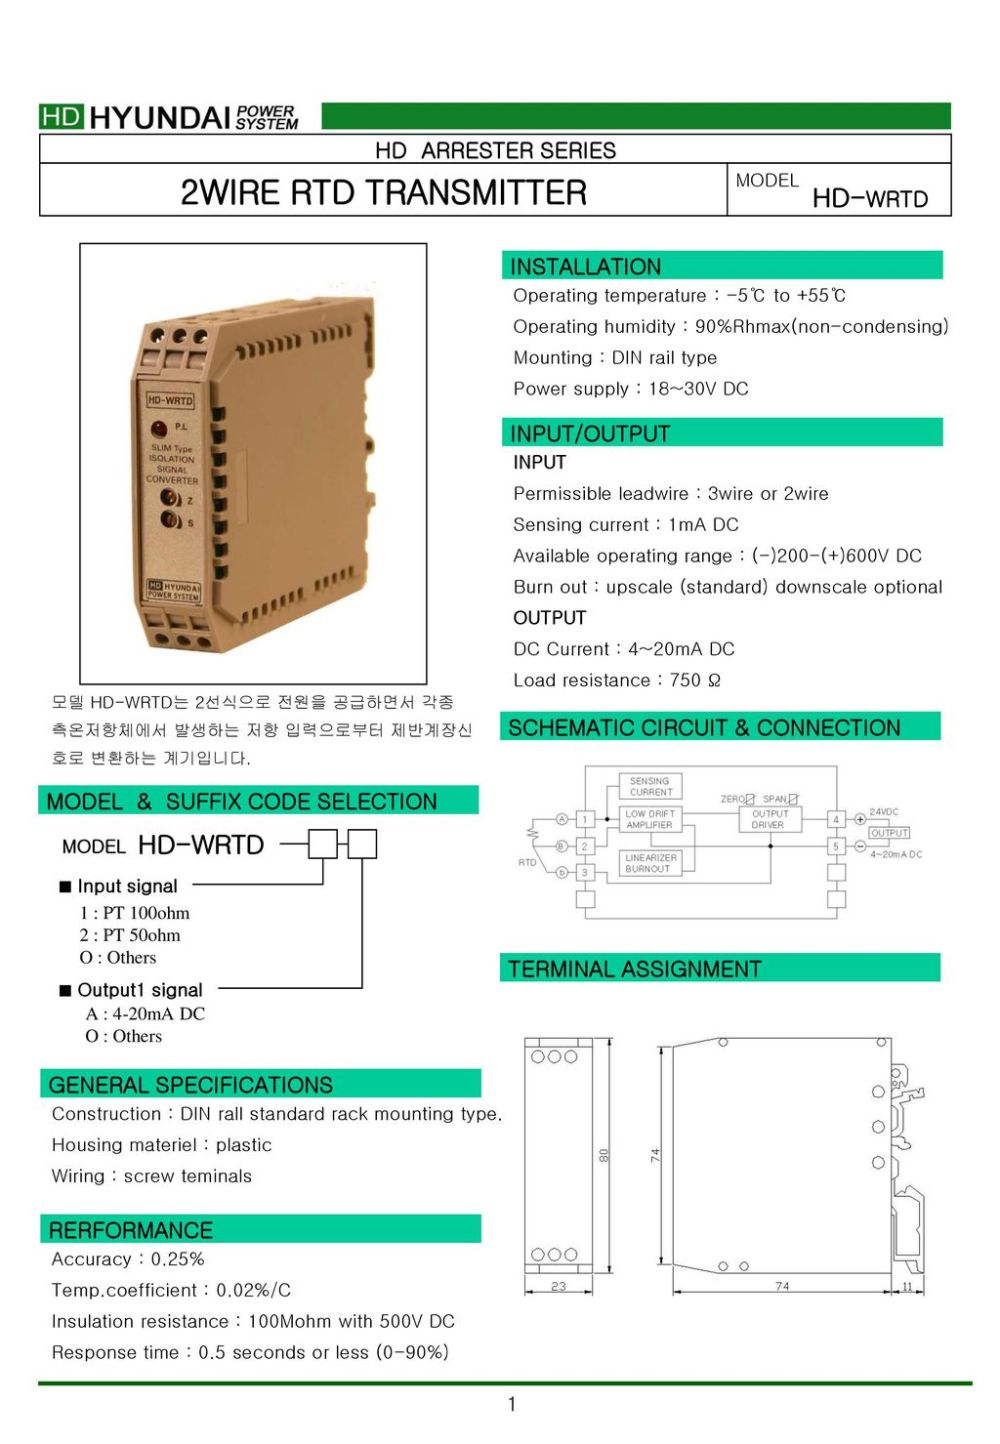 medium resolution of 2wire rtd transmitter hd wrtd hd wrtd hd arrester series installation